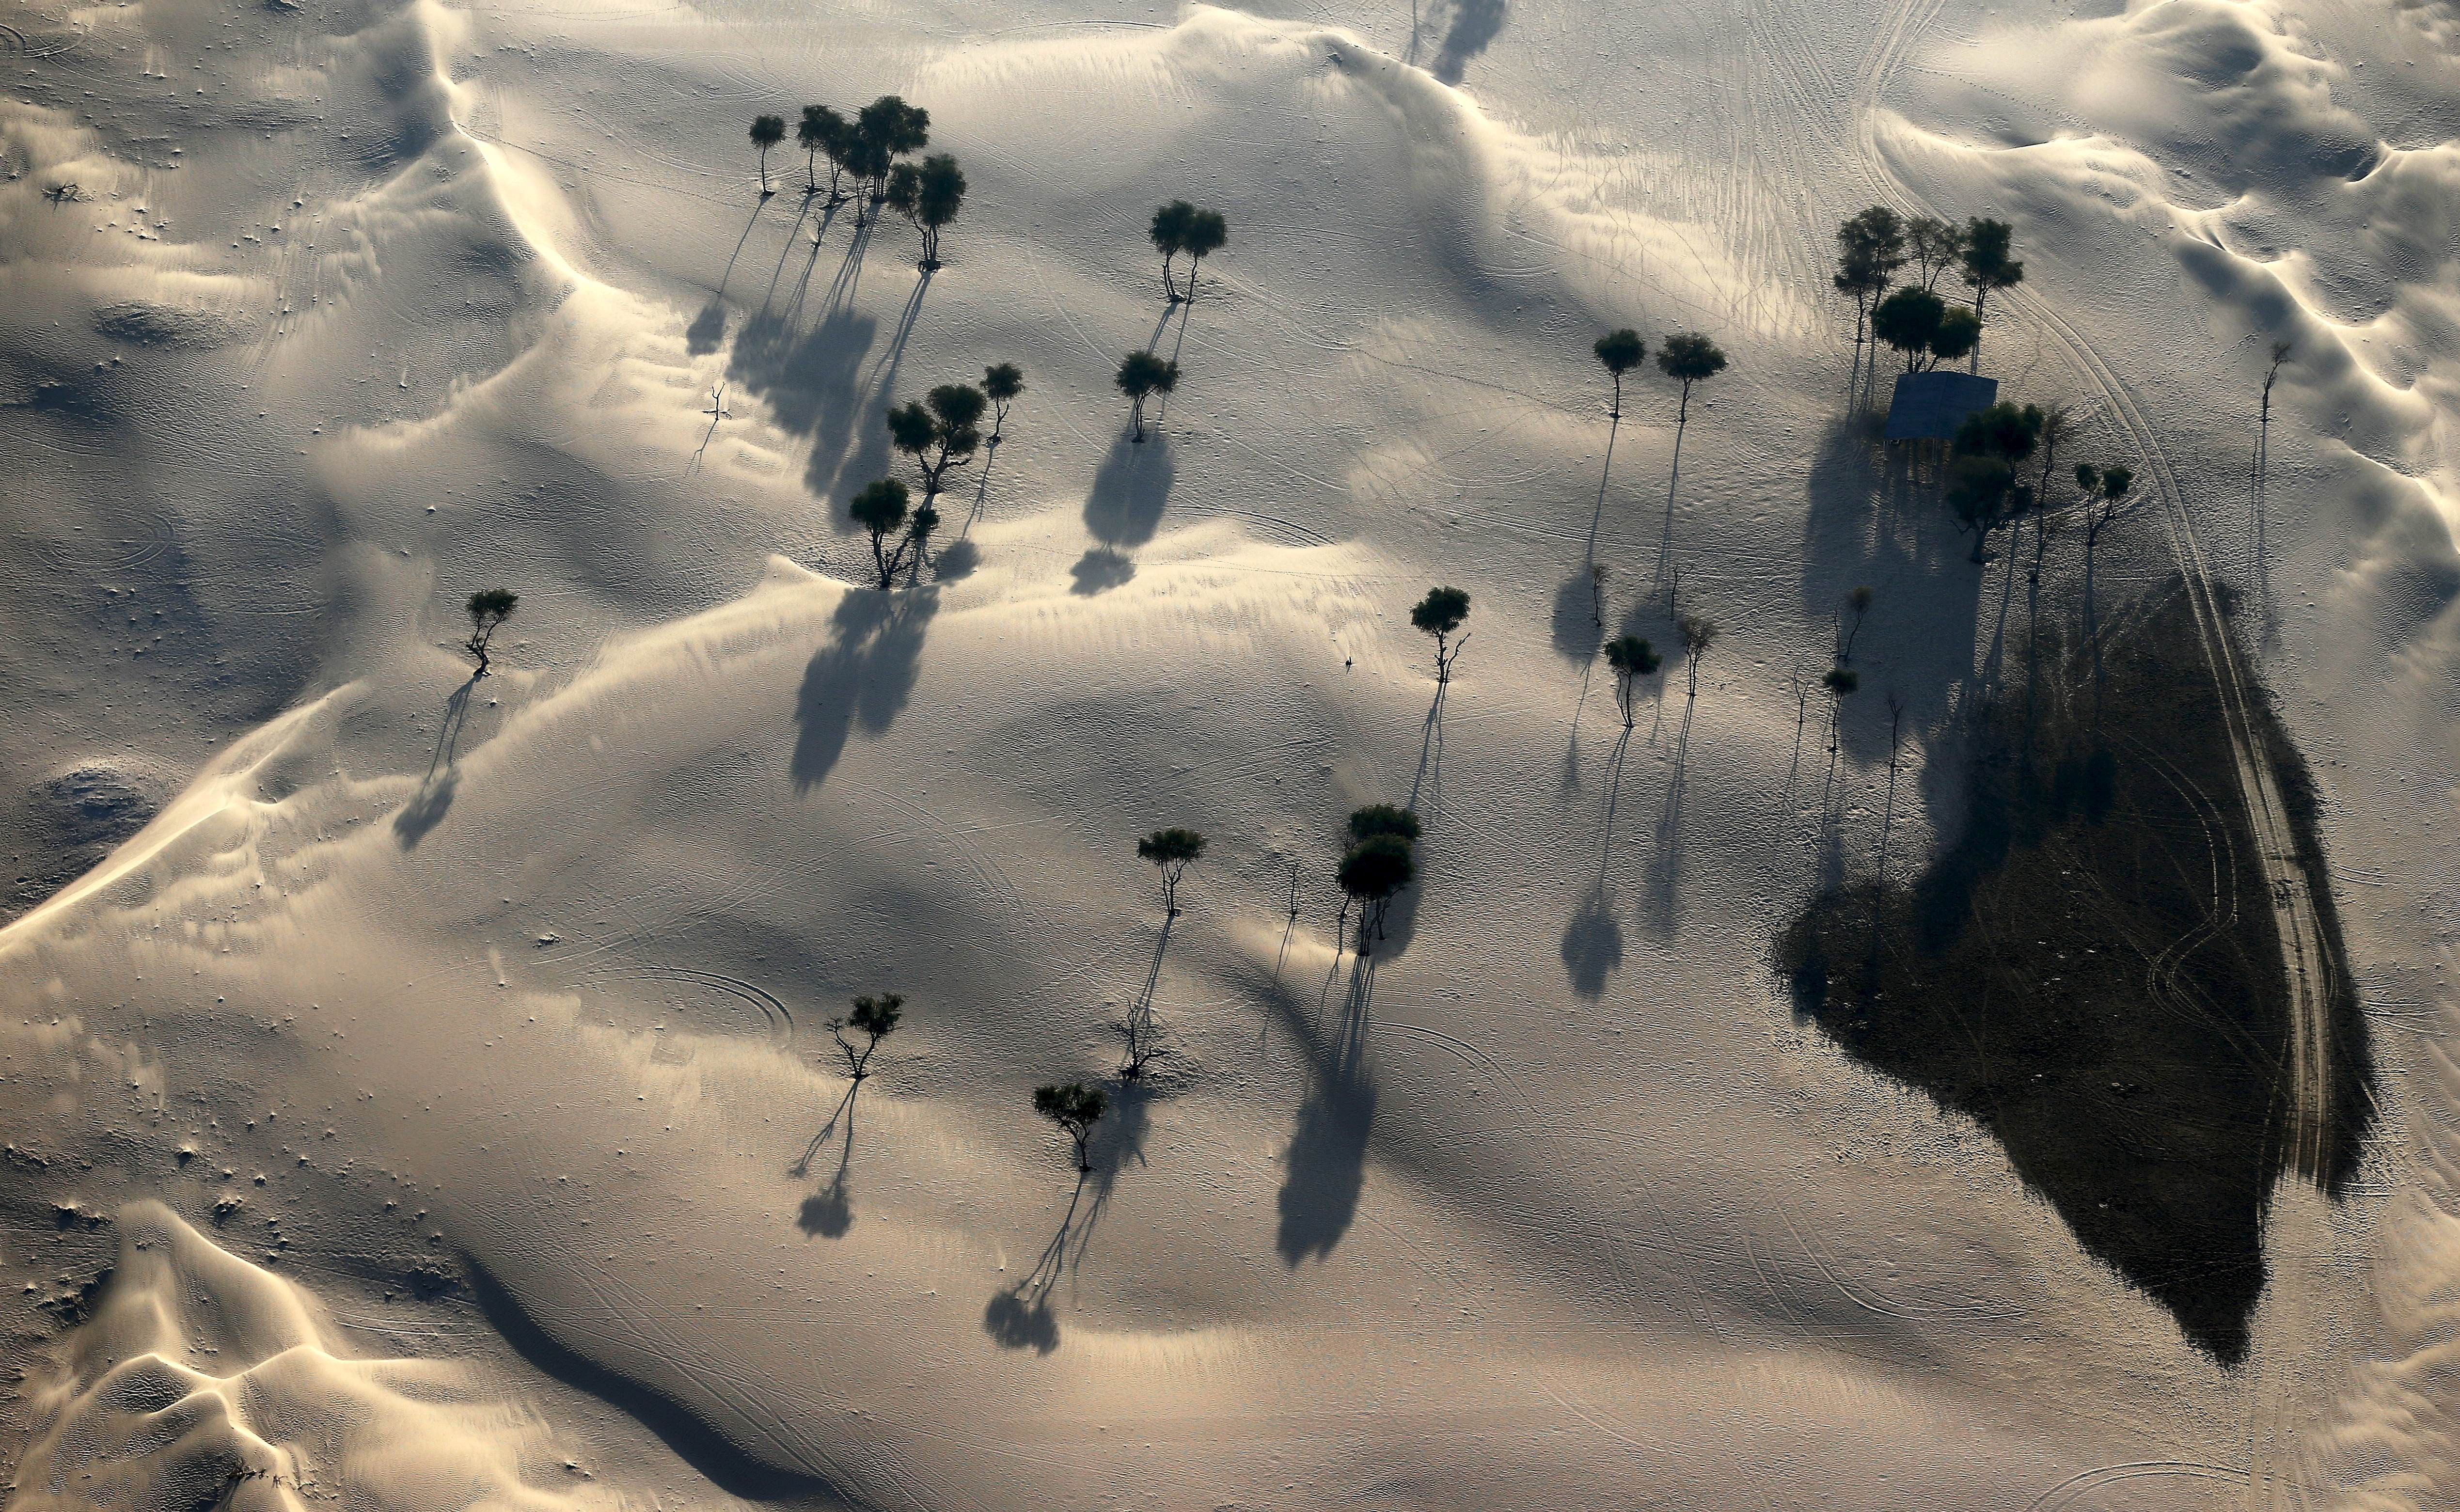 An aerial view of Nad Al Sheba Desert in Dubai December 9, 2015. Picture taken December 9, 2015. REUTERS/Karim Sahib/Pool - GF10000261124